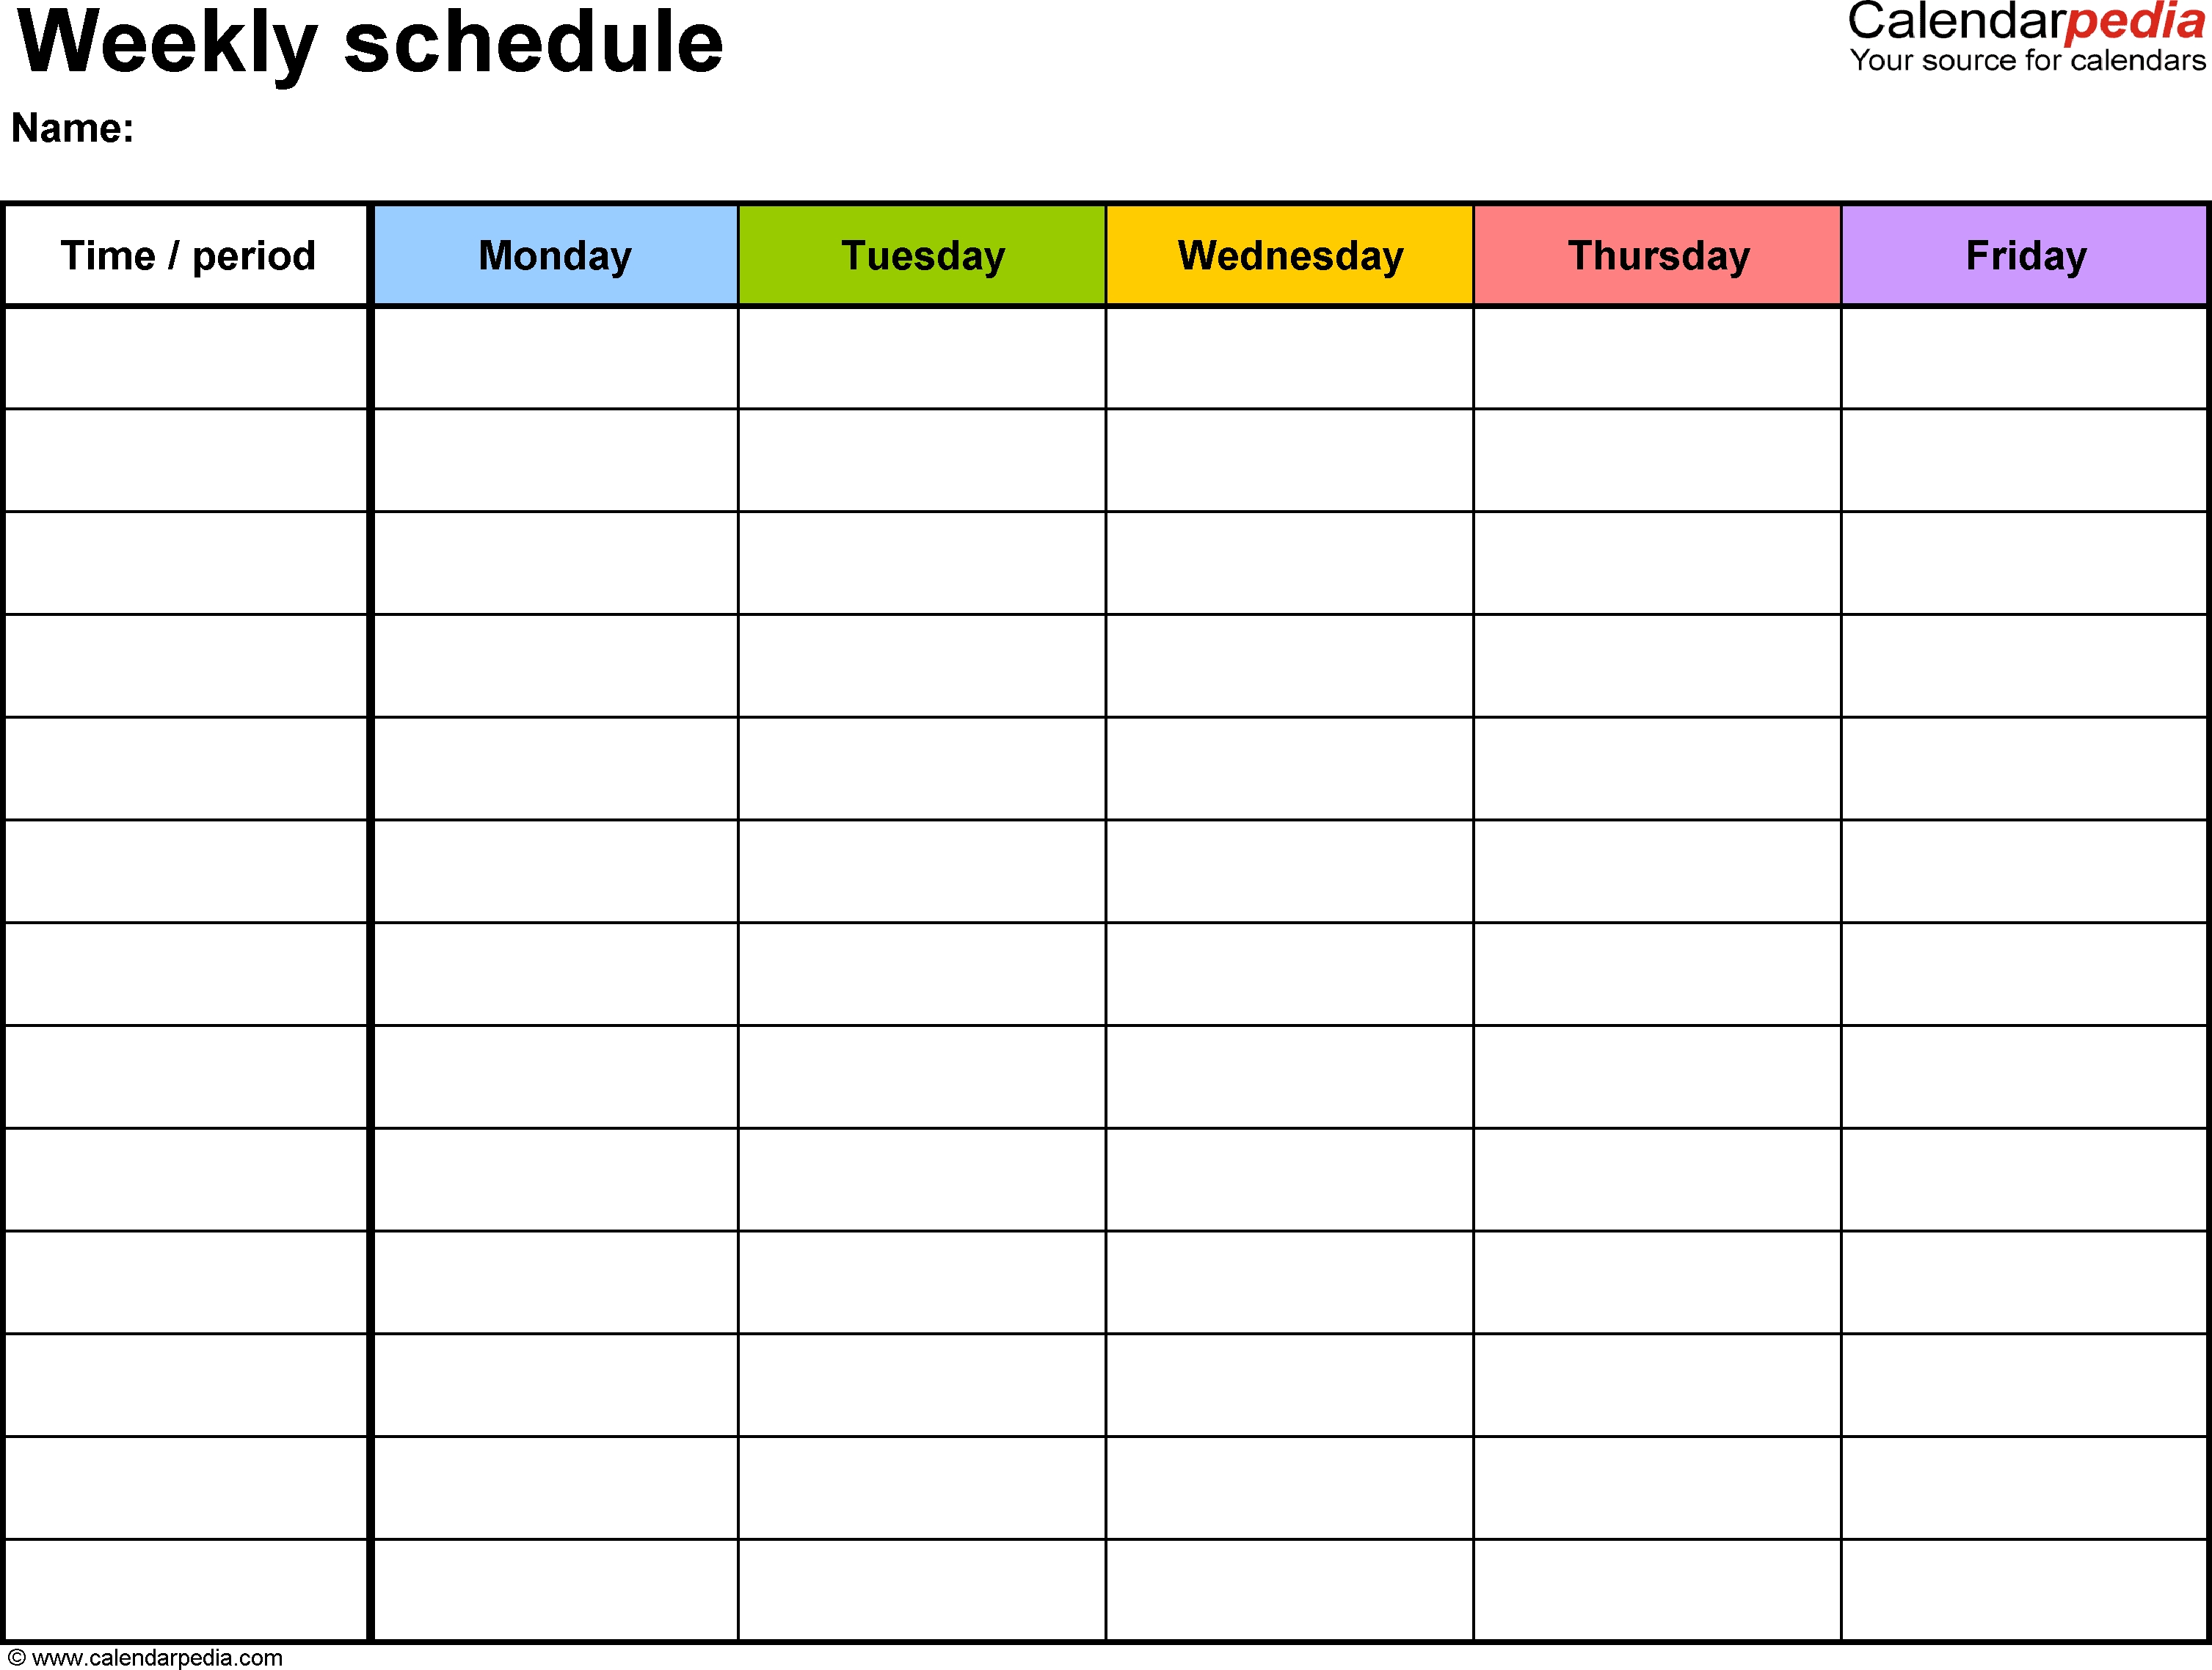 Free Weekly Schedule Templates For Word - 18 Templates with Free Printable Blank Employee Schedules